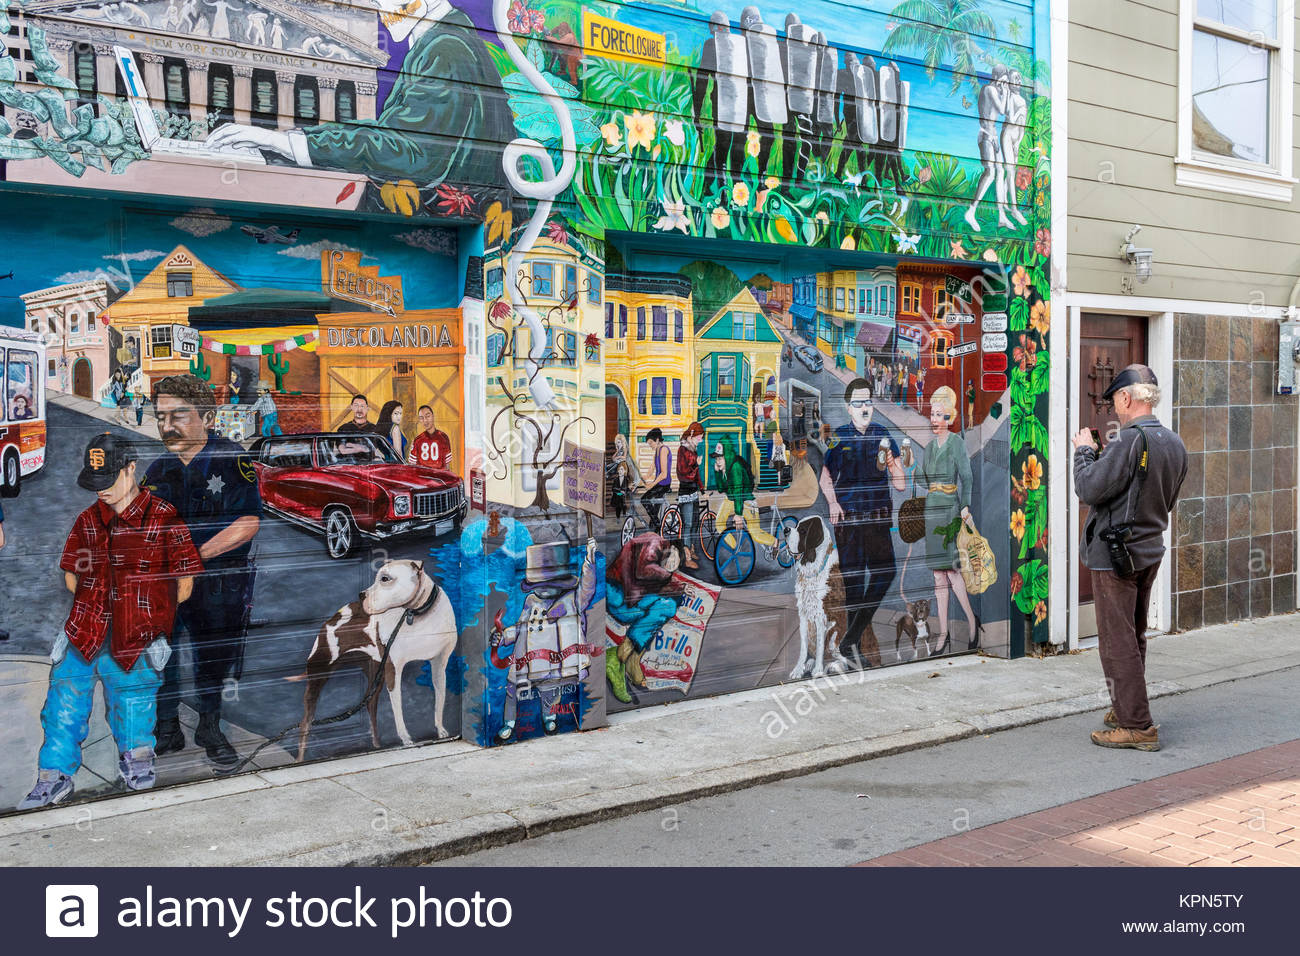 San francisco downtown mural stock photos san francisco for California mural